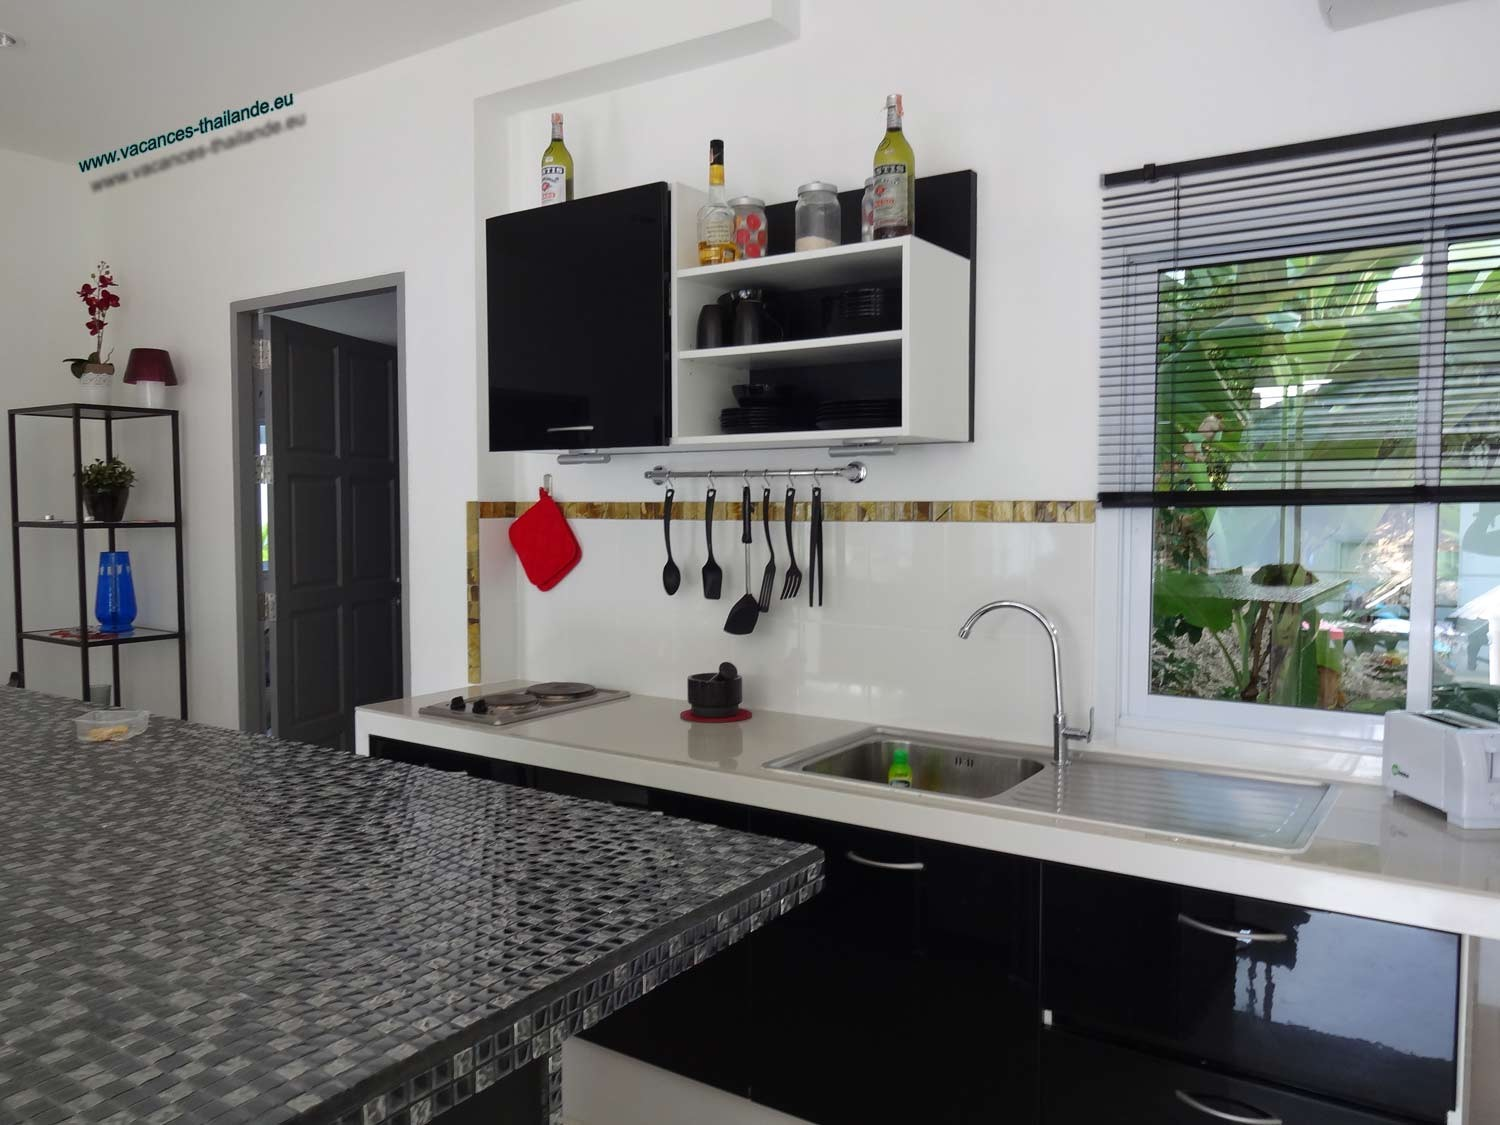 Photo 34 english central plot kitchen electric stove, microwave oven and various accessory koh samui